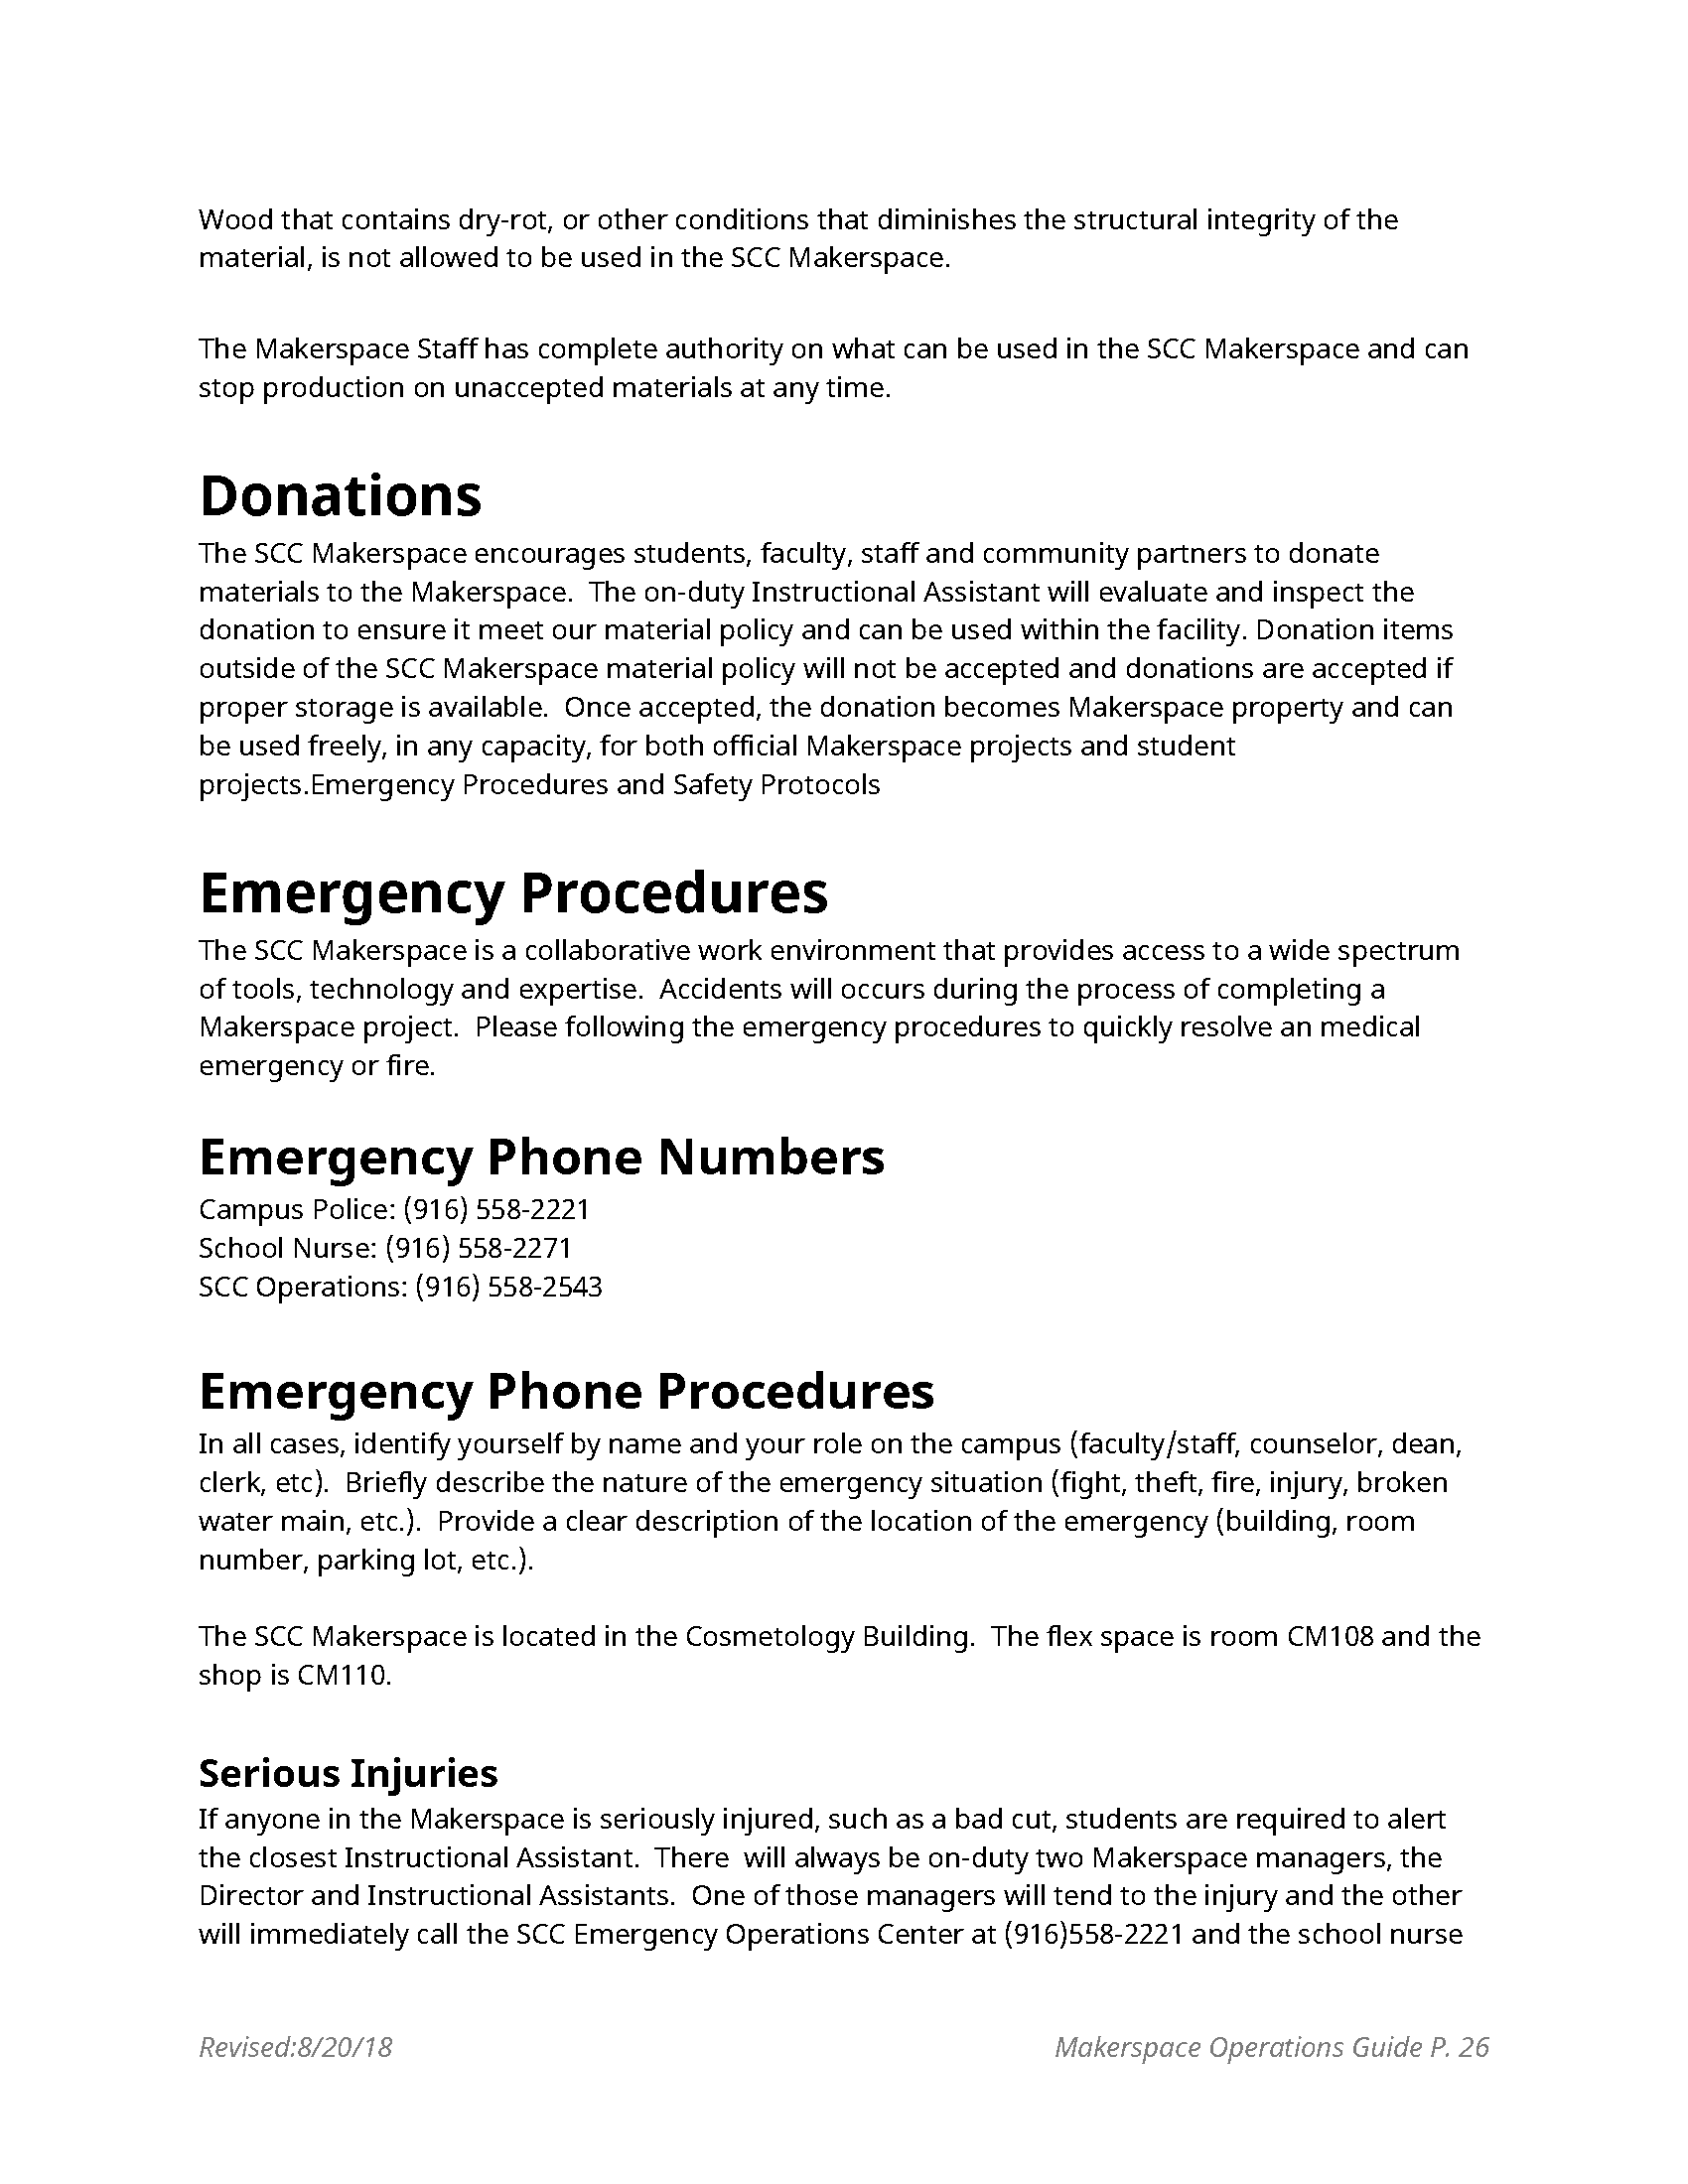 ms_ops_manual_8-20_Page_26.png